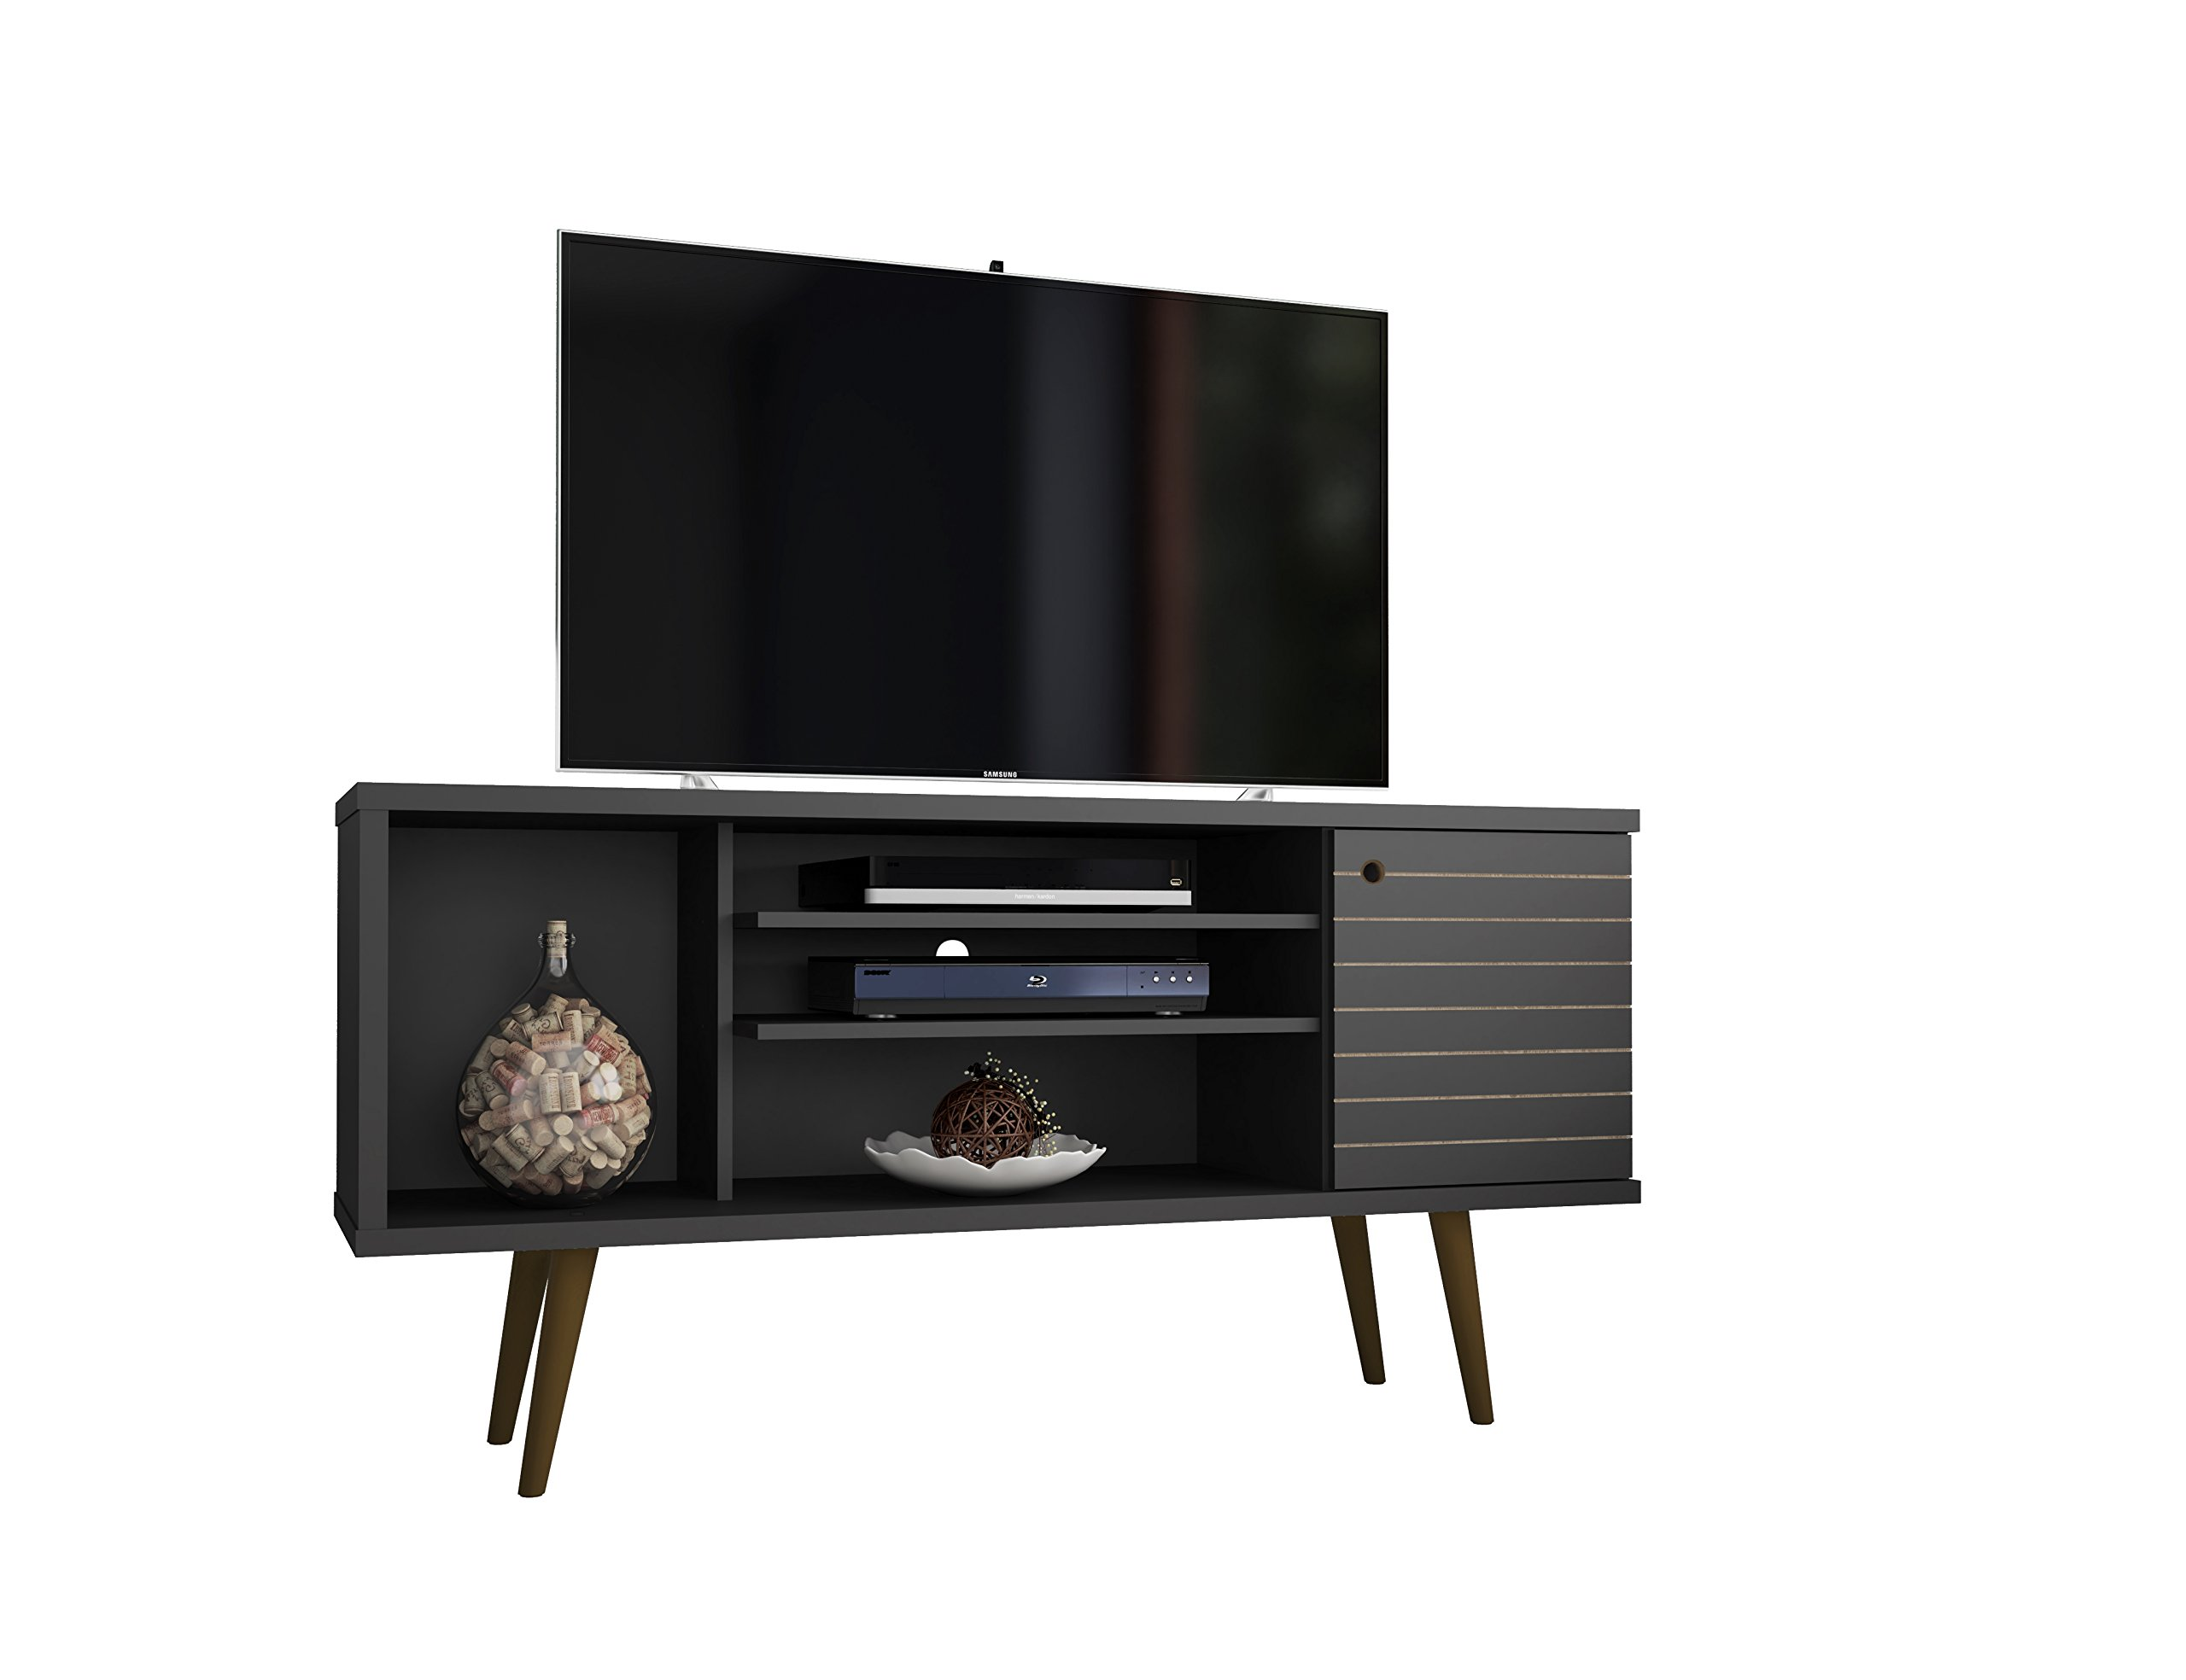 ModHaus Living Mid Century Modern TV Stand Media Cabinet with 5 Shelves 1 Door and Solid Wood Legs - Includes Pen (Black) by ModHaus Living